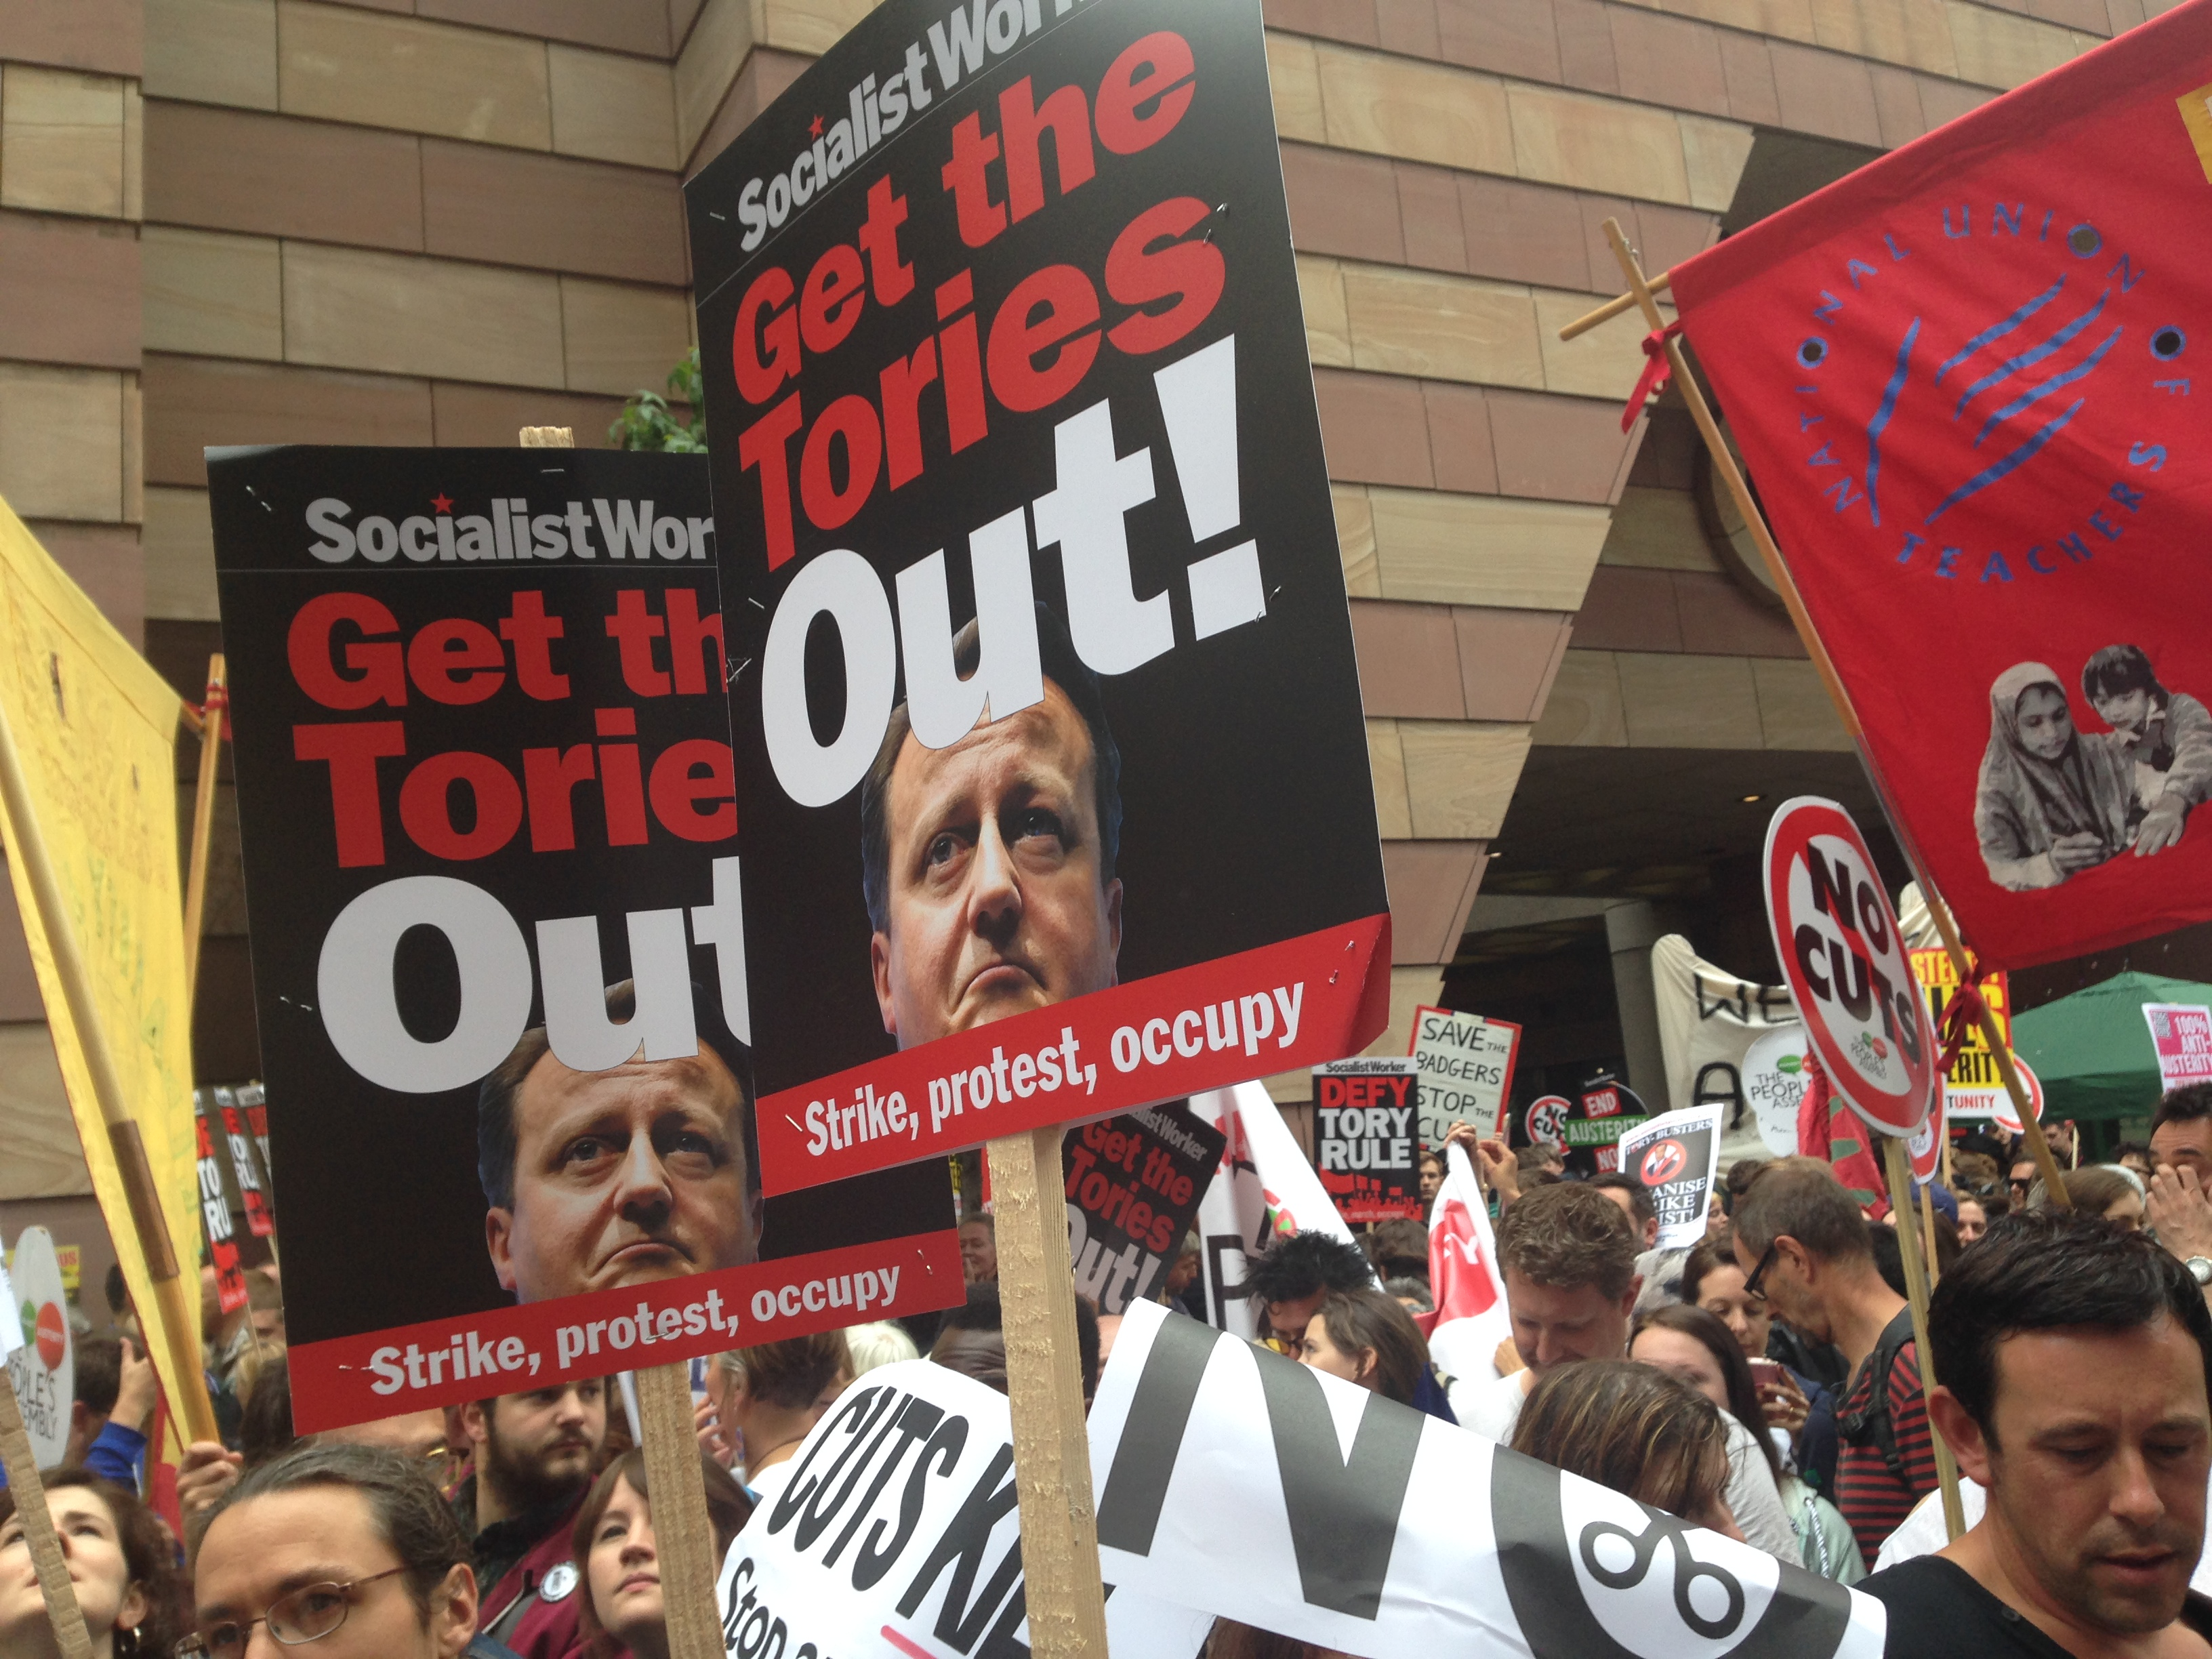 """People used to shout """"Maggie, Maggie, Maggie"""" """"Out, Out, Out!"""" at anti-Thatcher demos in the '80s. Today, a simple """"Tory, Tory, Tory"""" will get the same response."""